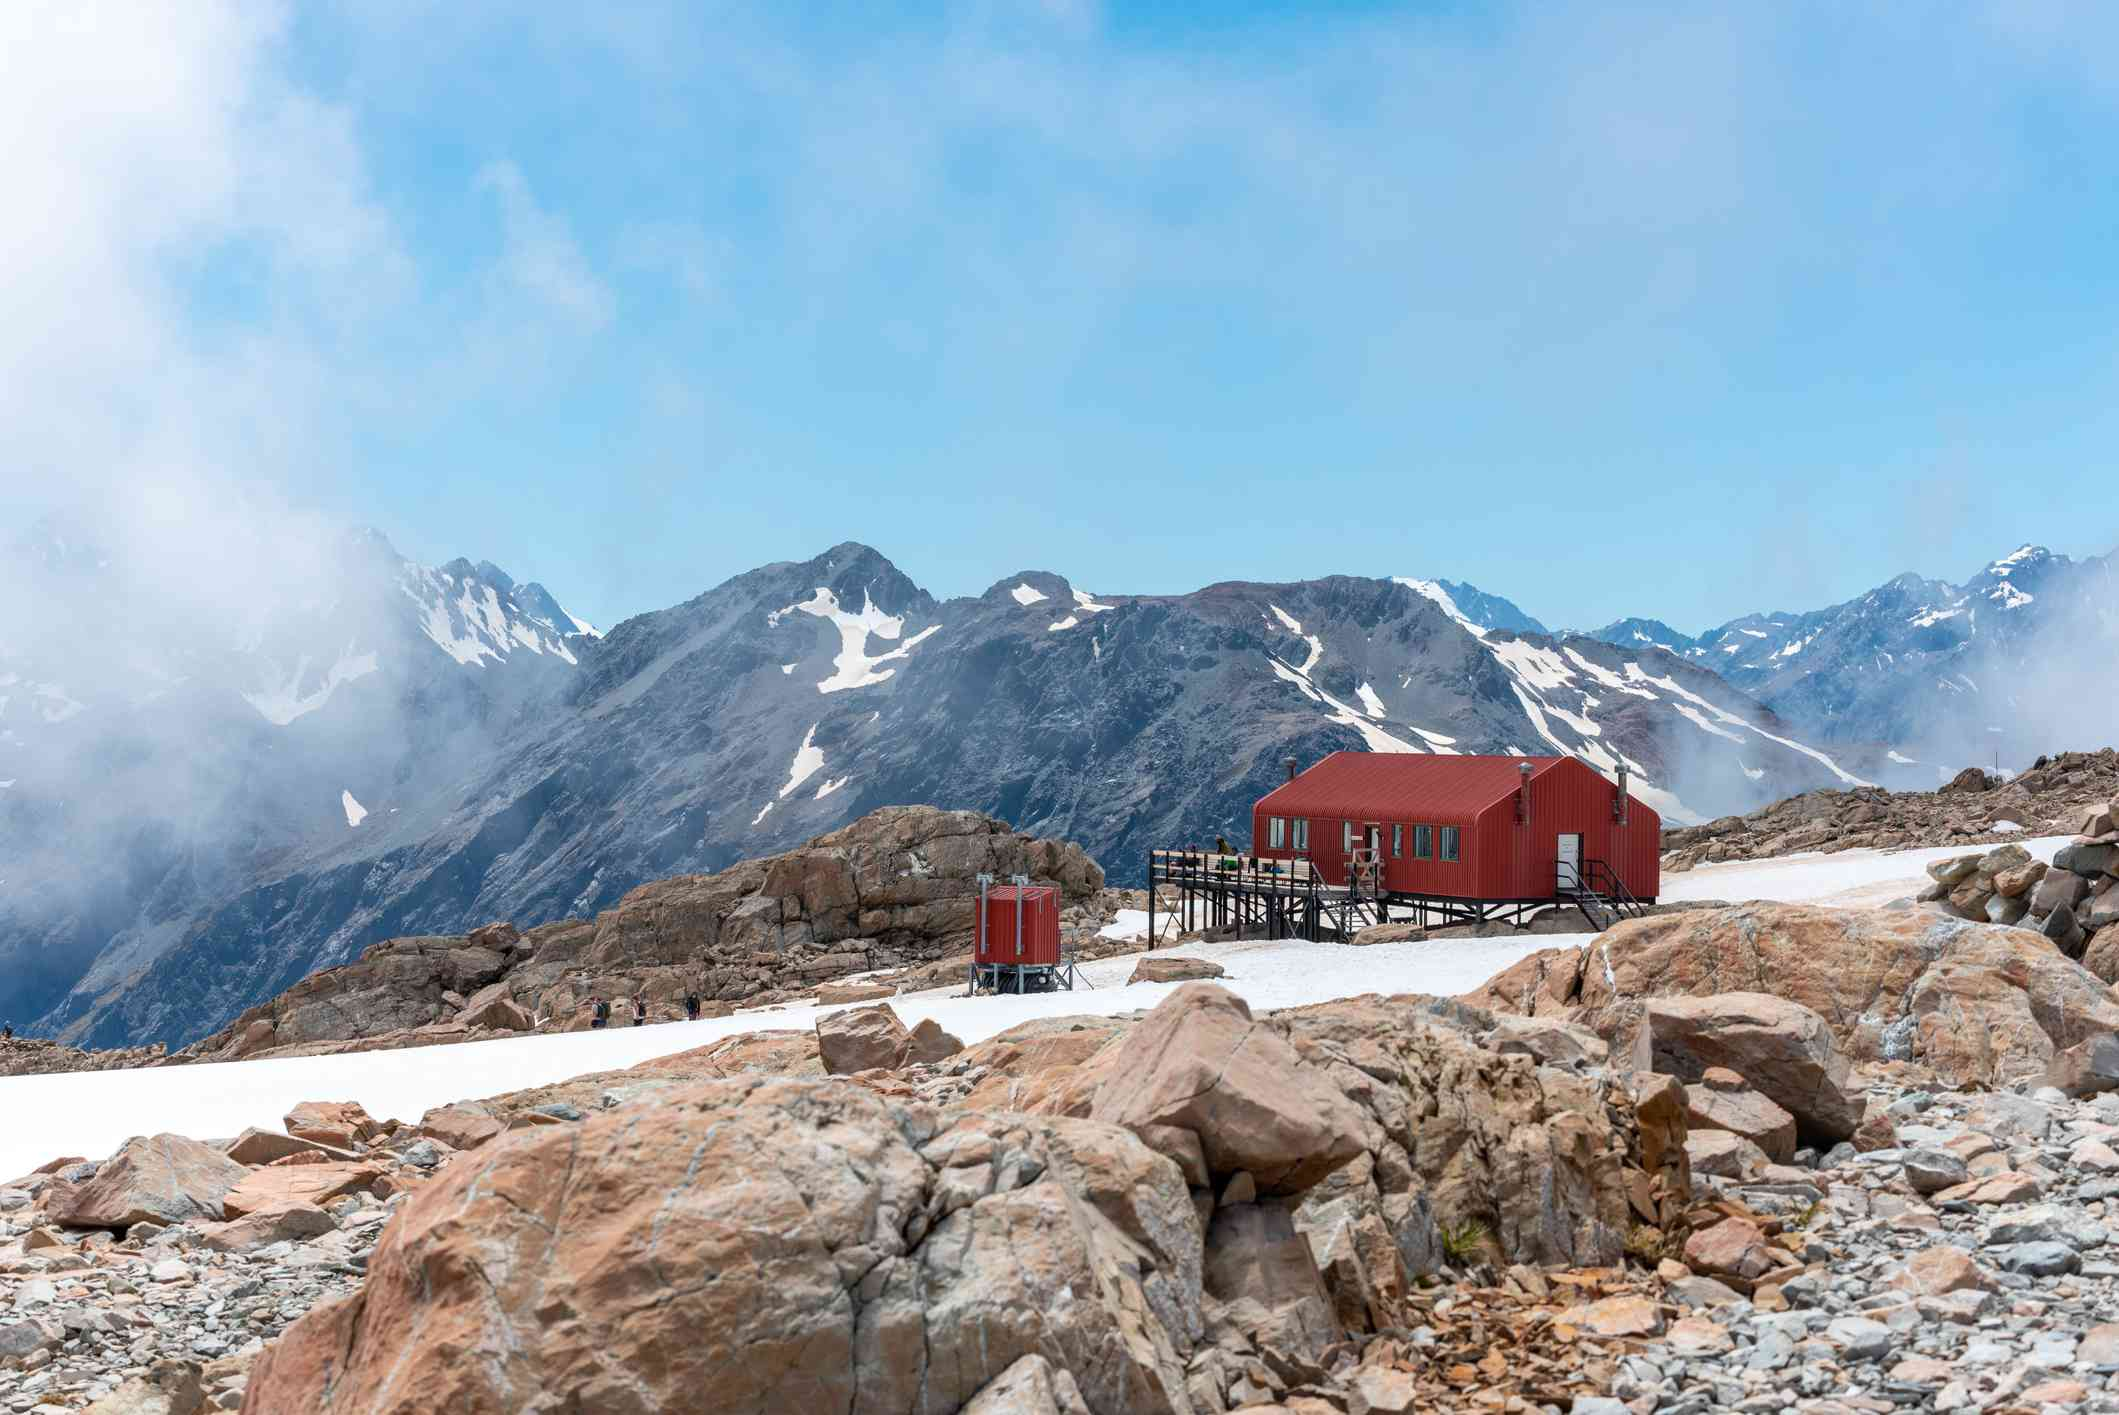 red hut in mid-ground with rocks covered in snow and mountains and clouds